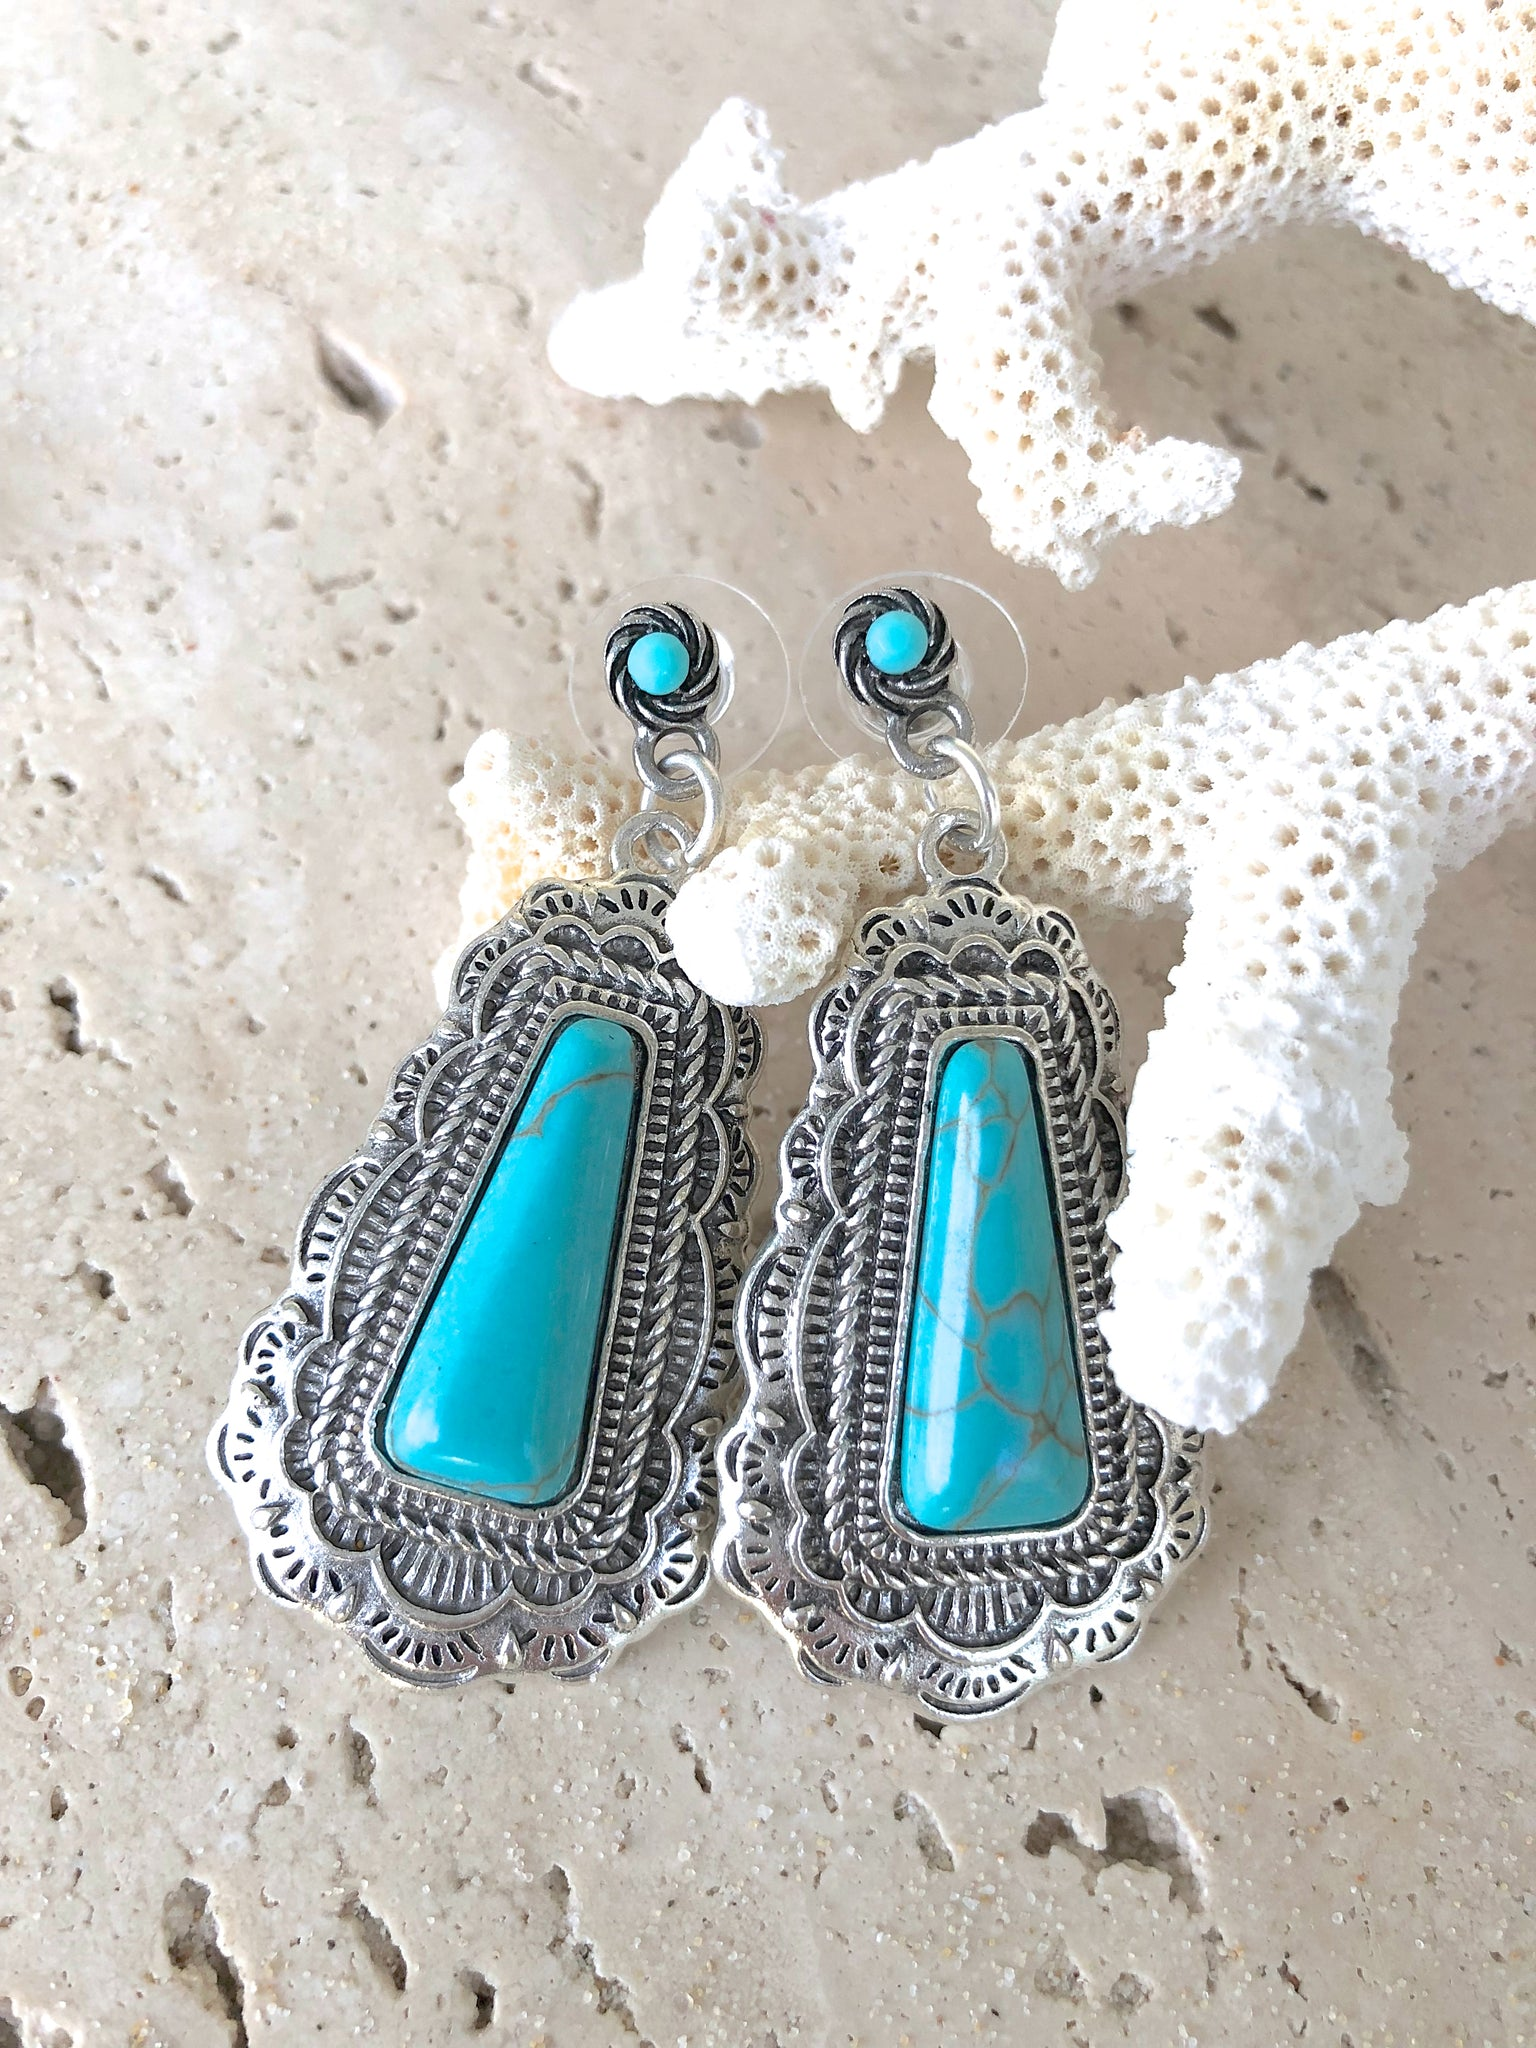 Bohemian Vintage Silver Turquoise Gemstone Earrings